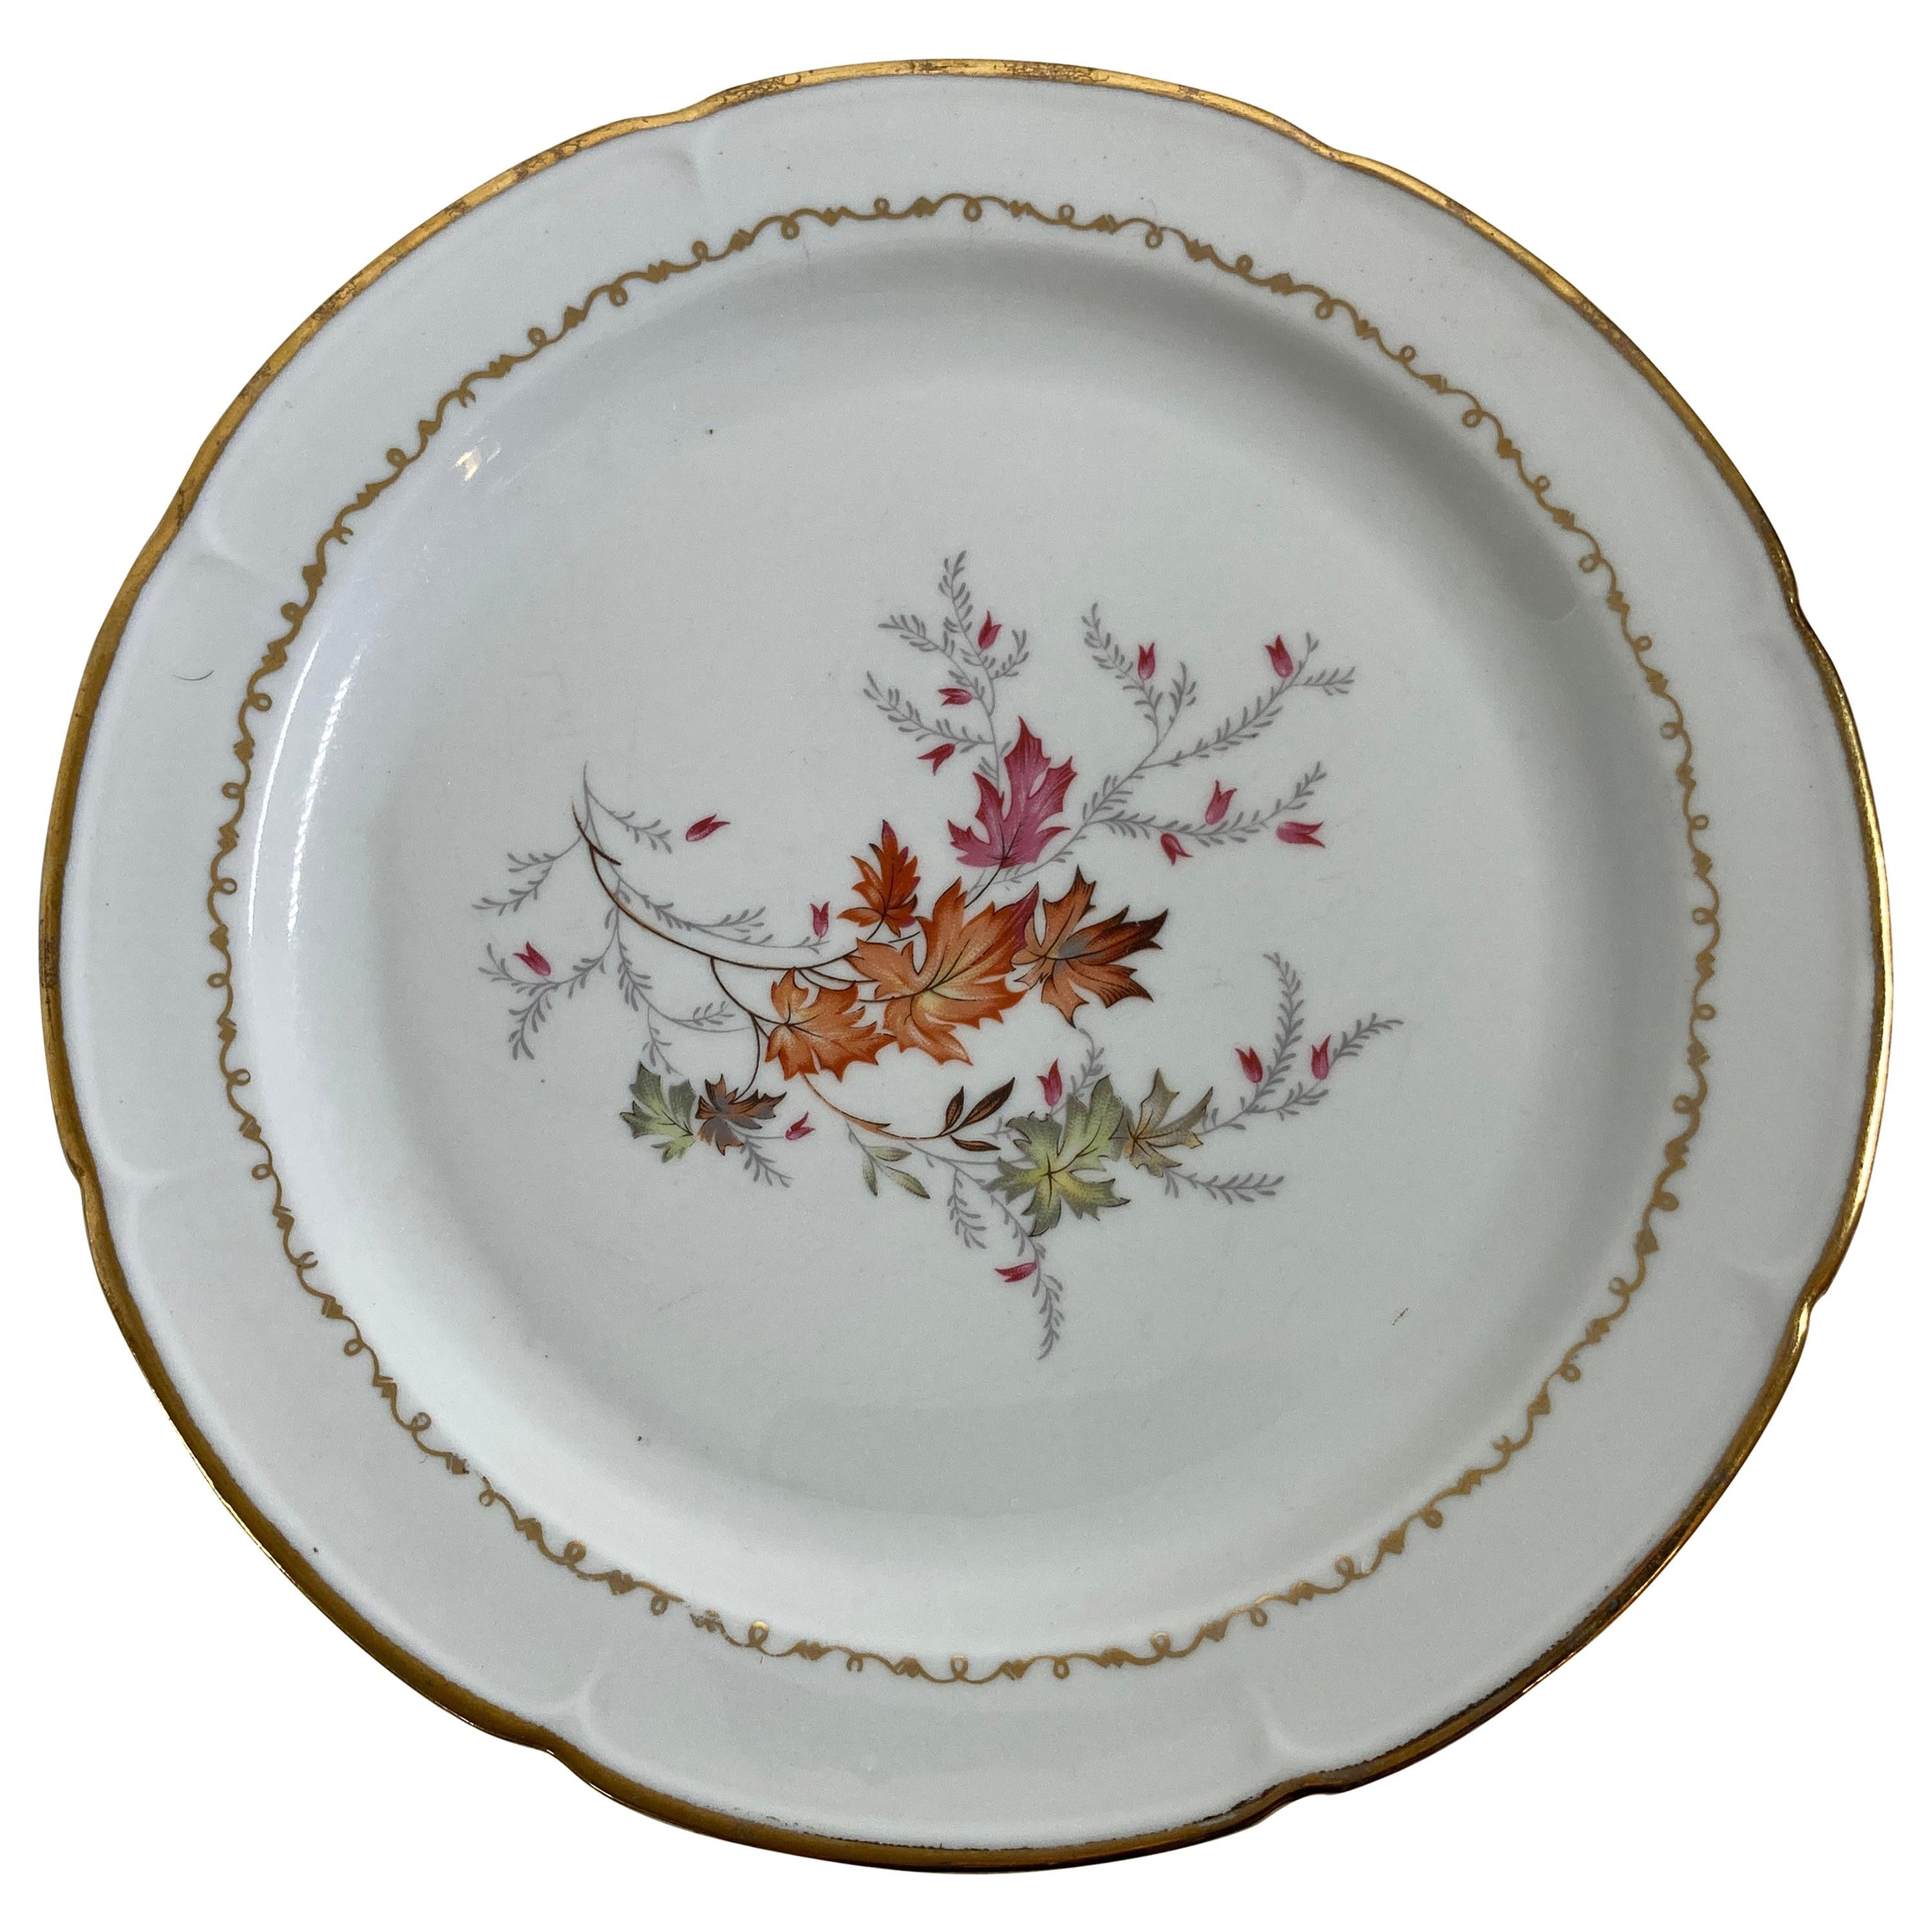 Vintage Limoges Collectible Plate Handmade in France